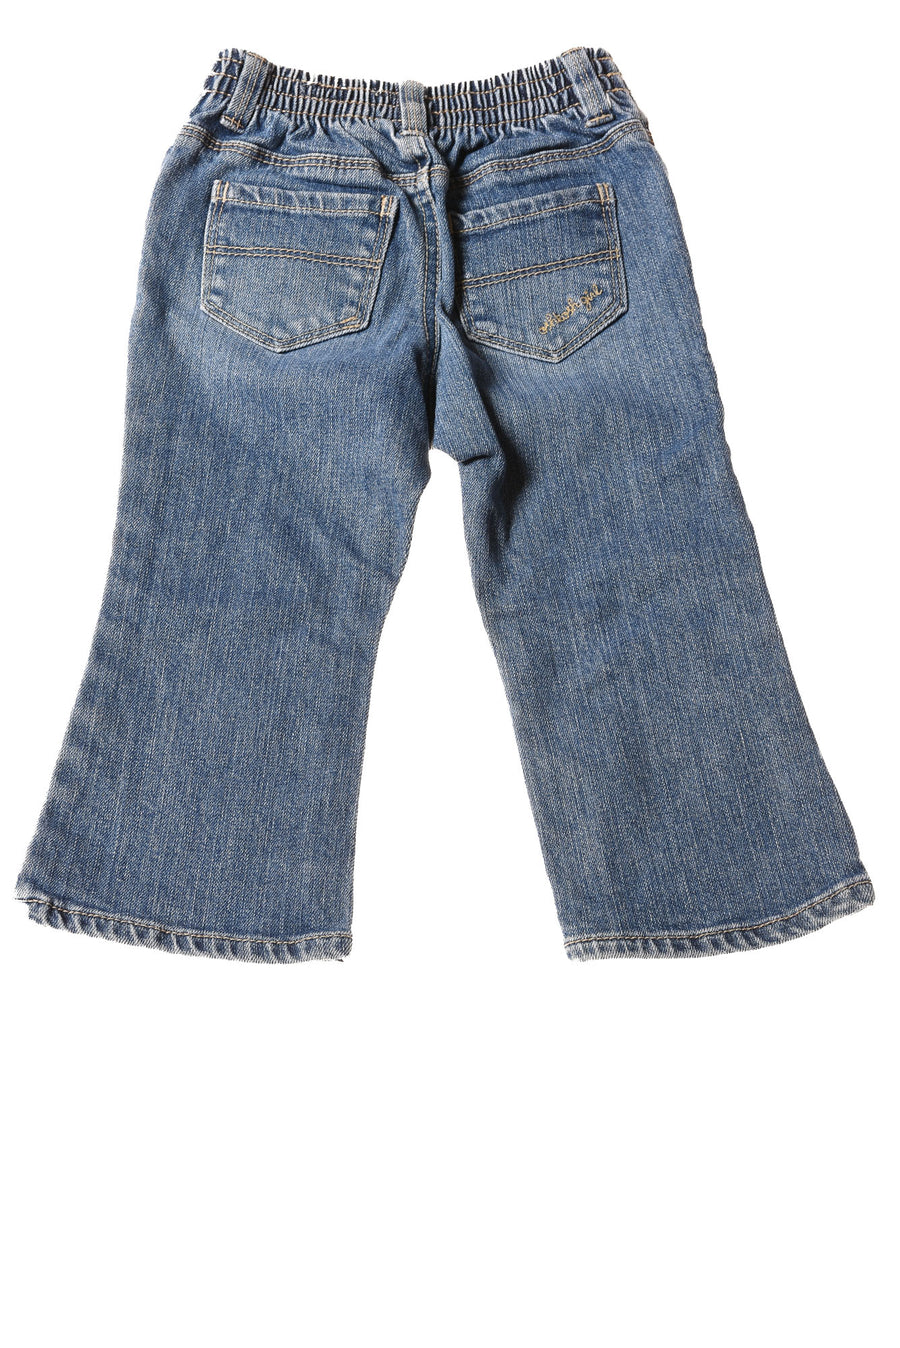 USED Oshkosh Baby Boy's Jeans 24 Months Blue